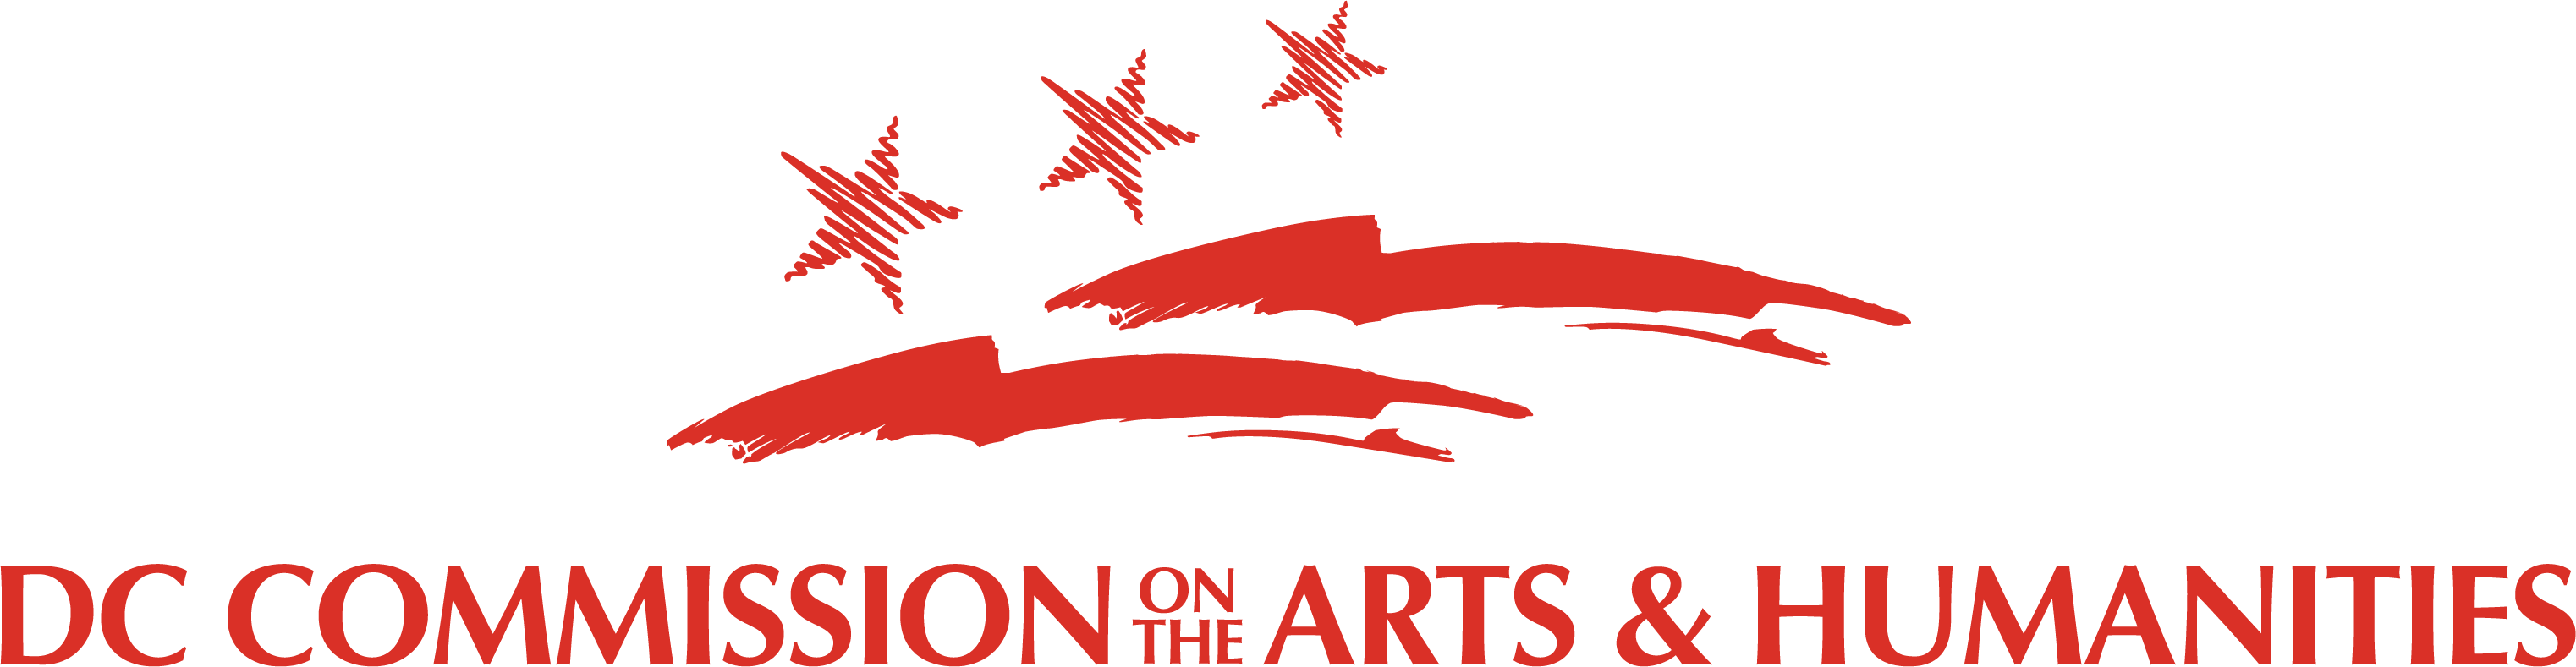 DC Commission on the Arts and Humanities